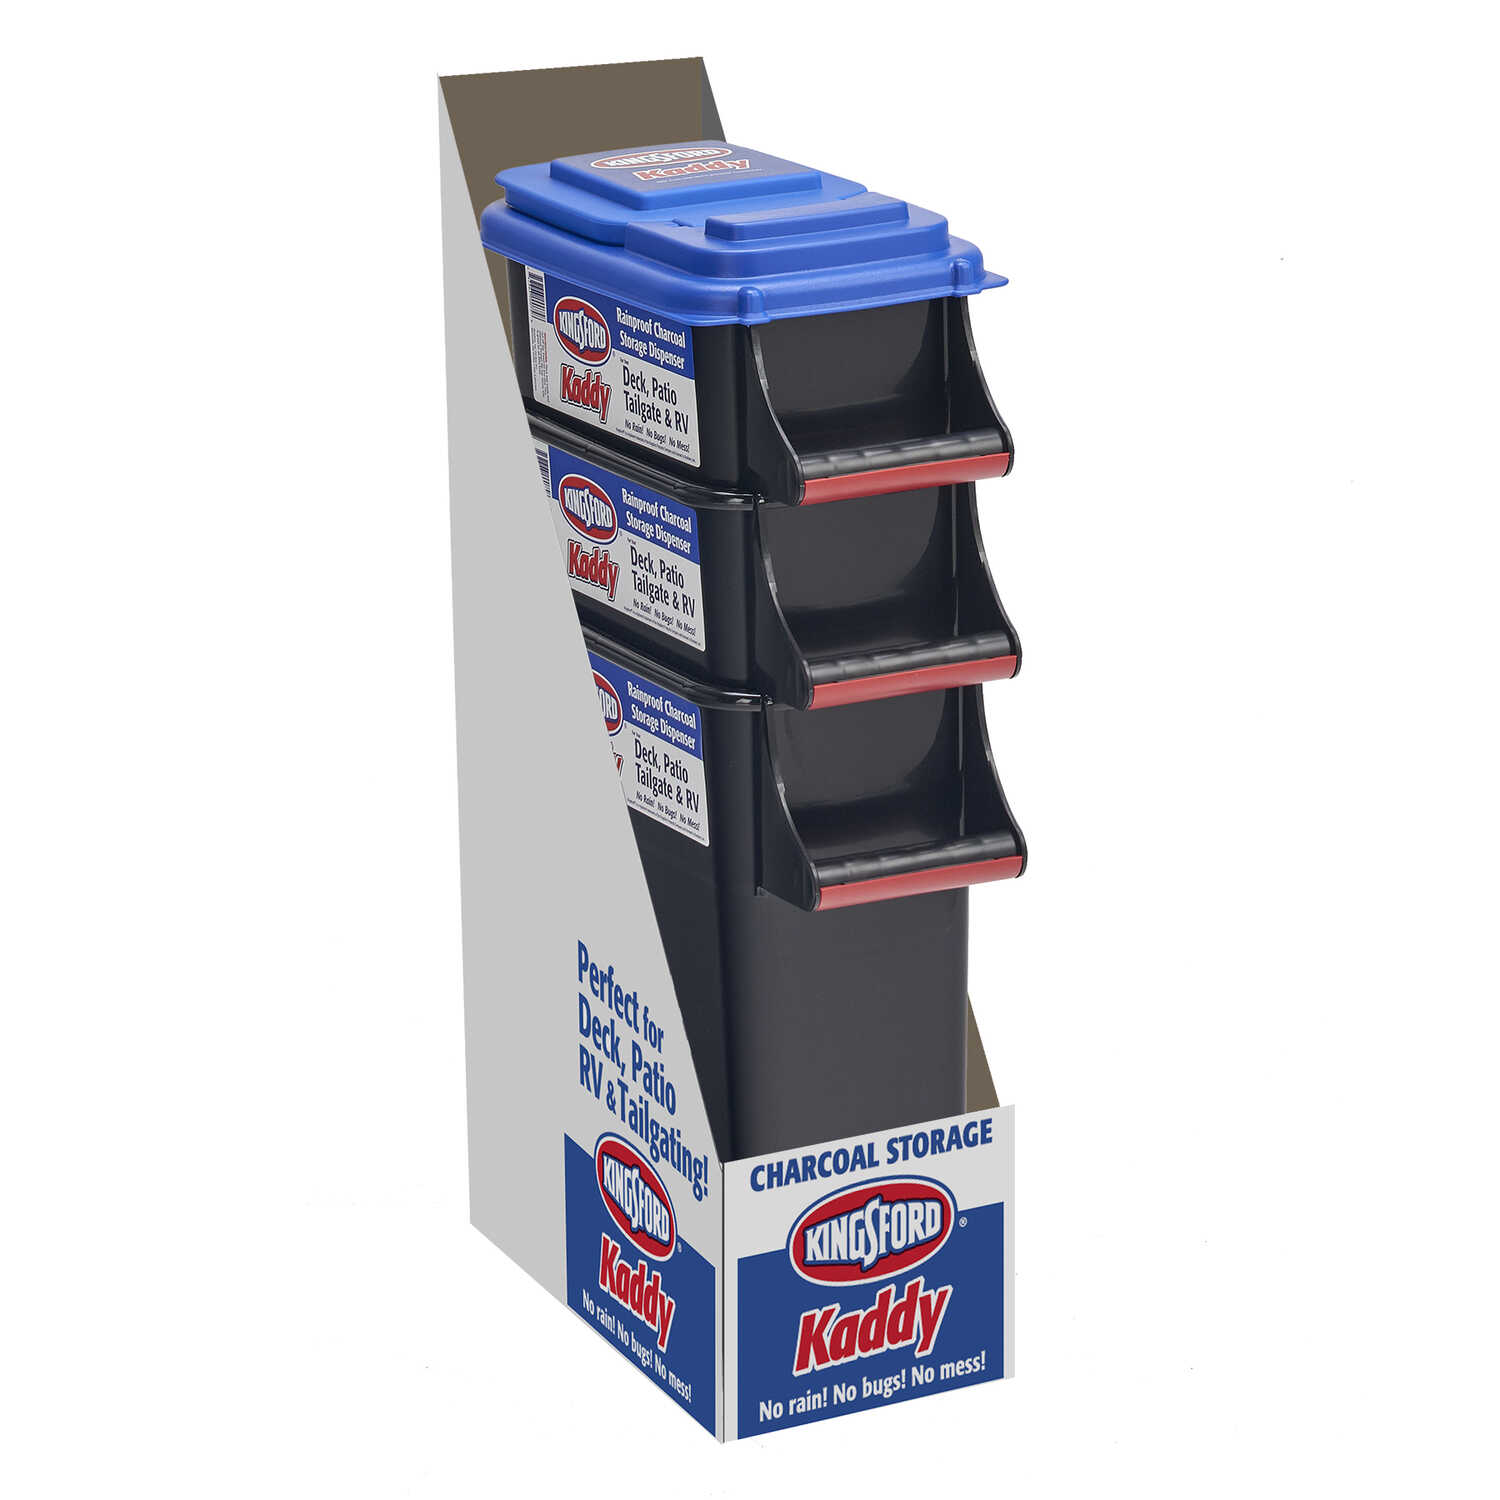 Kingsford  Buddeez Kaddy  16-1/2 in. H x 7-3/4 in. W x 14-1/2 in. D Storage Bin  Stackable